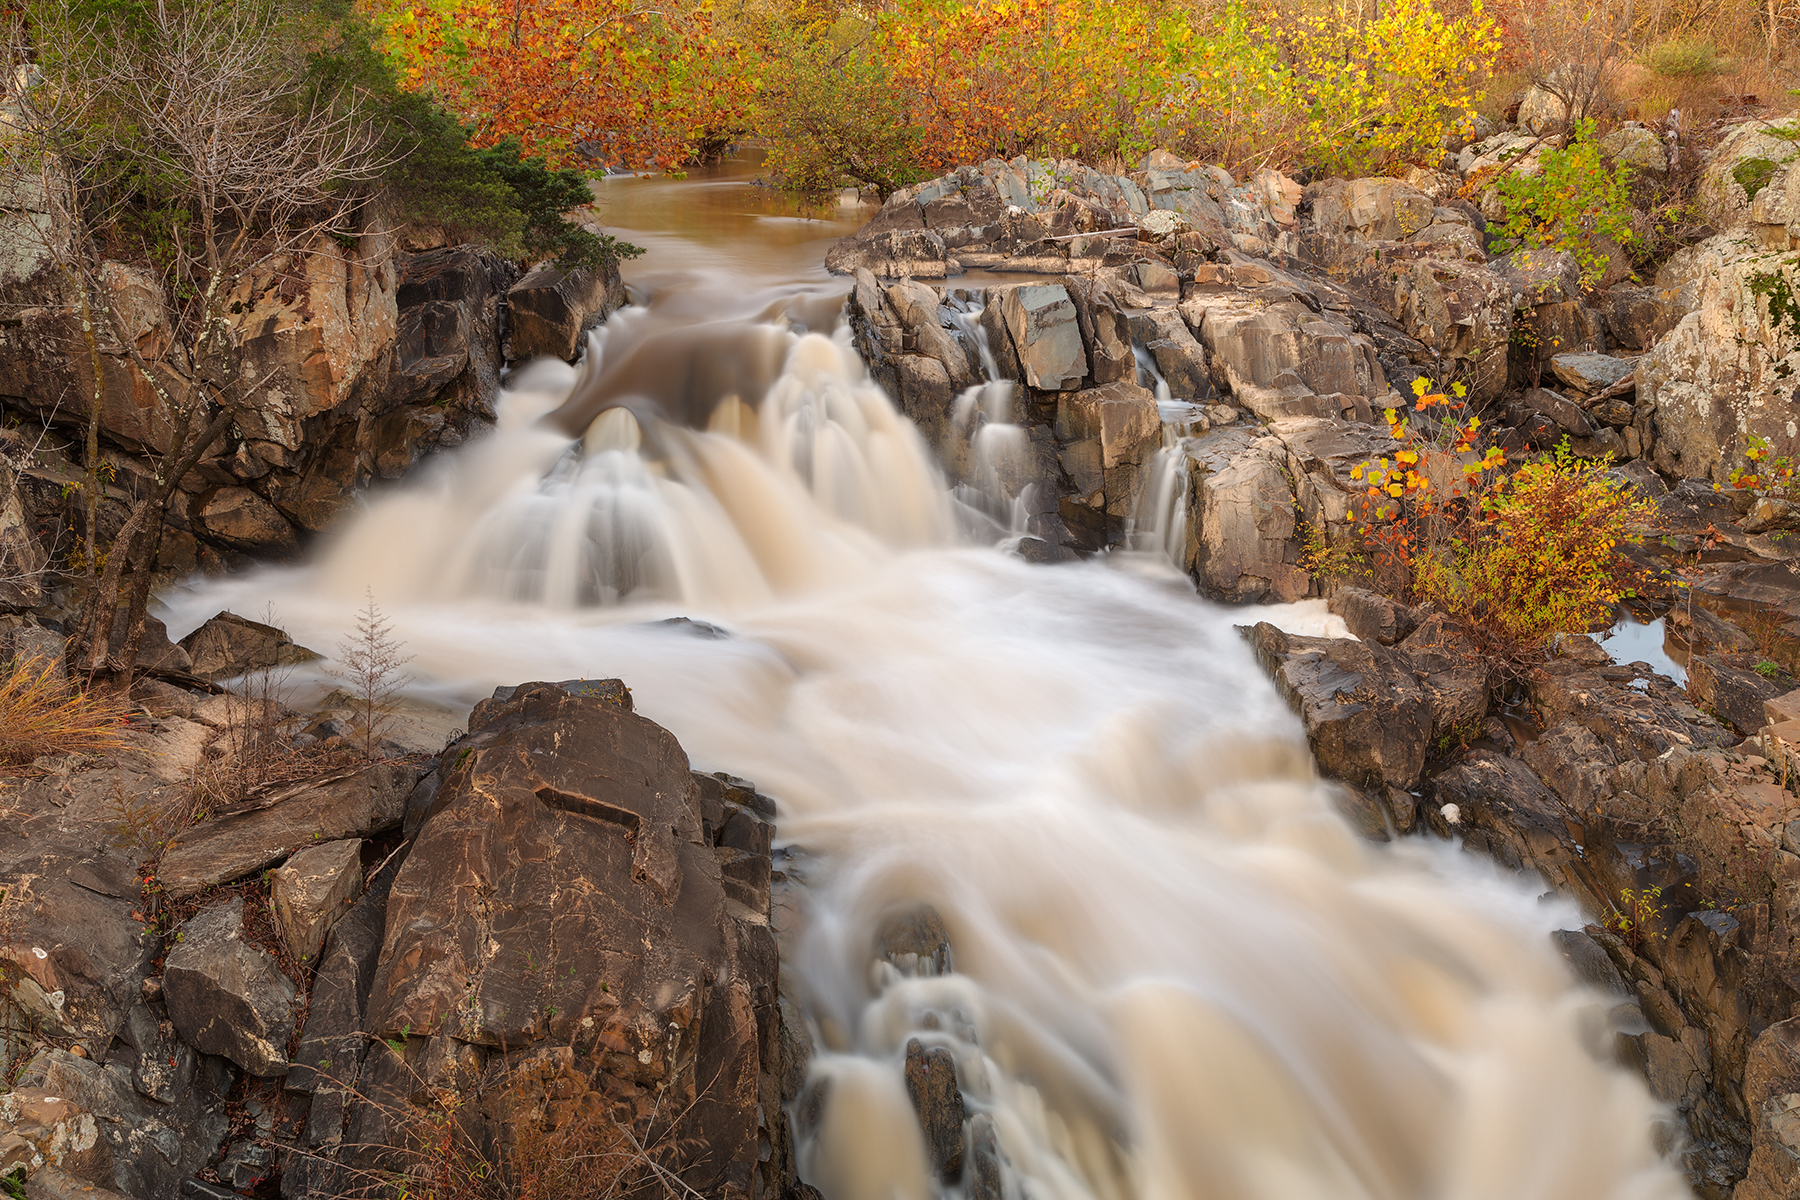 Great falls autumn cascades - hdr photo